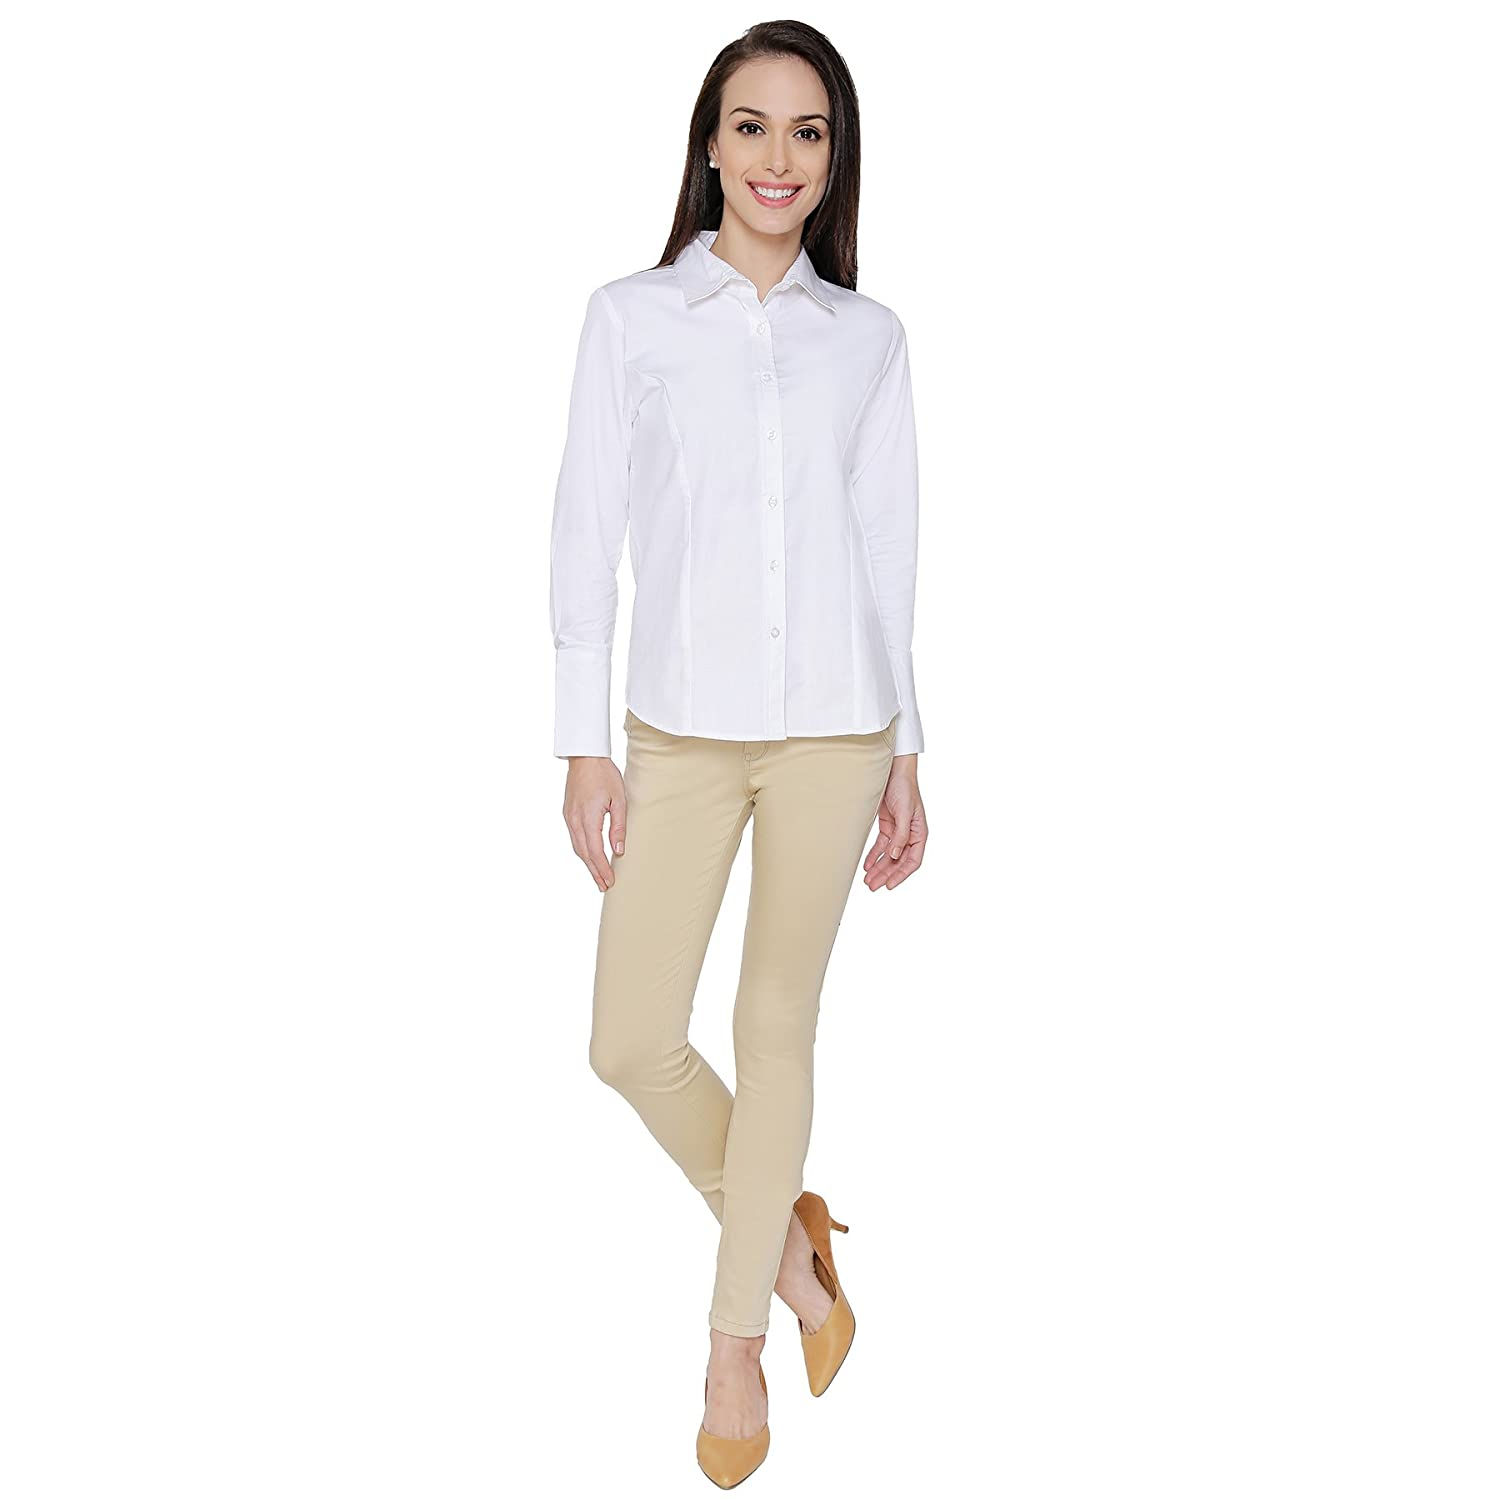 4b099a0f2c4203 The Cotton Company Women's Formal Shirt - White  (Shirts011_F_Valentina_White_M): Amazon.in: Clothing & Accessories